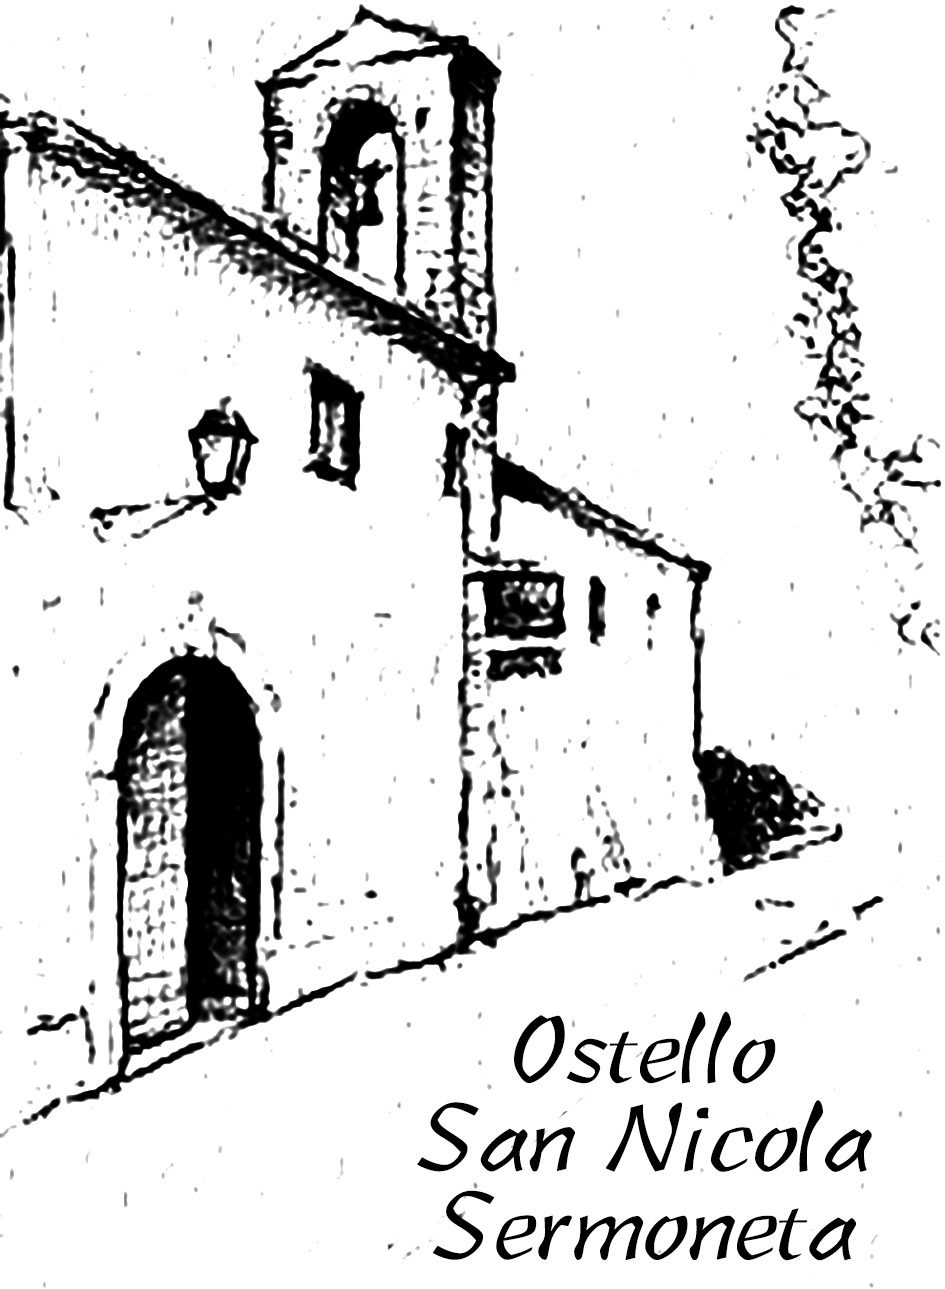 Ostello San Nicola